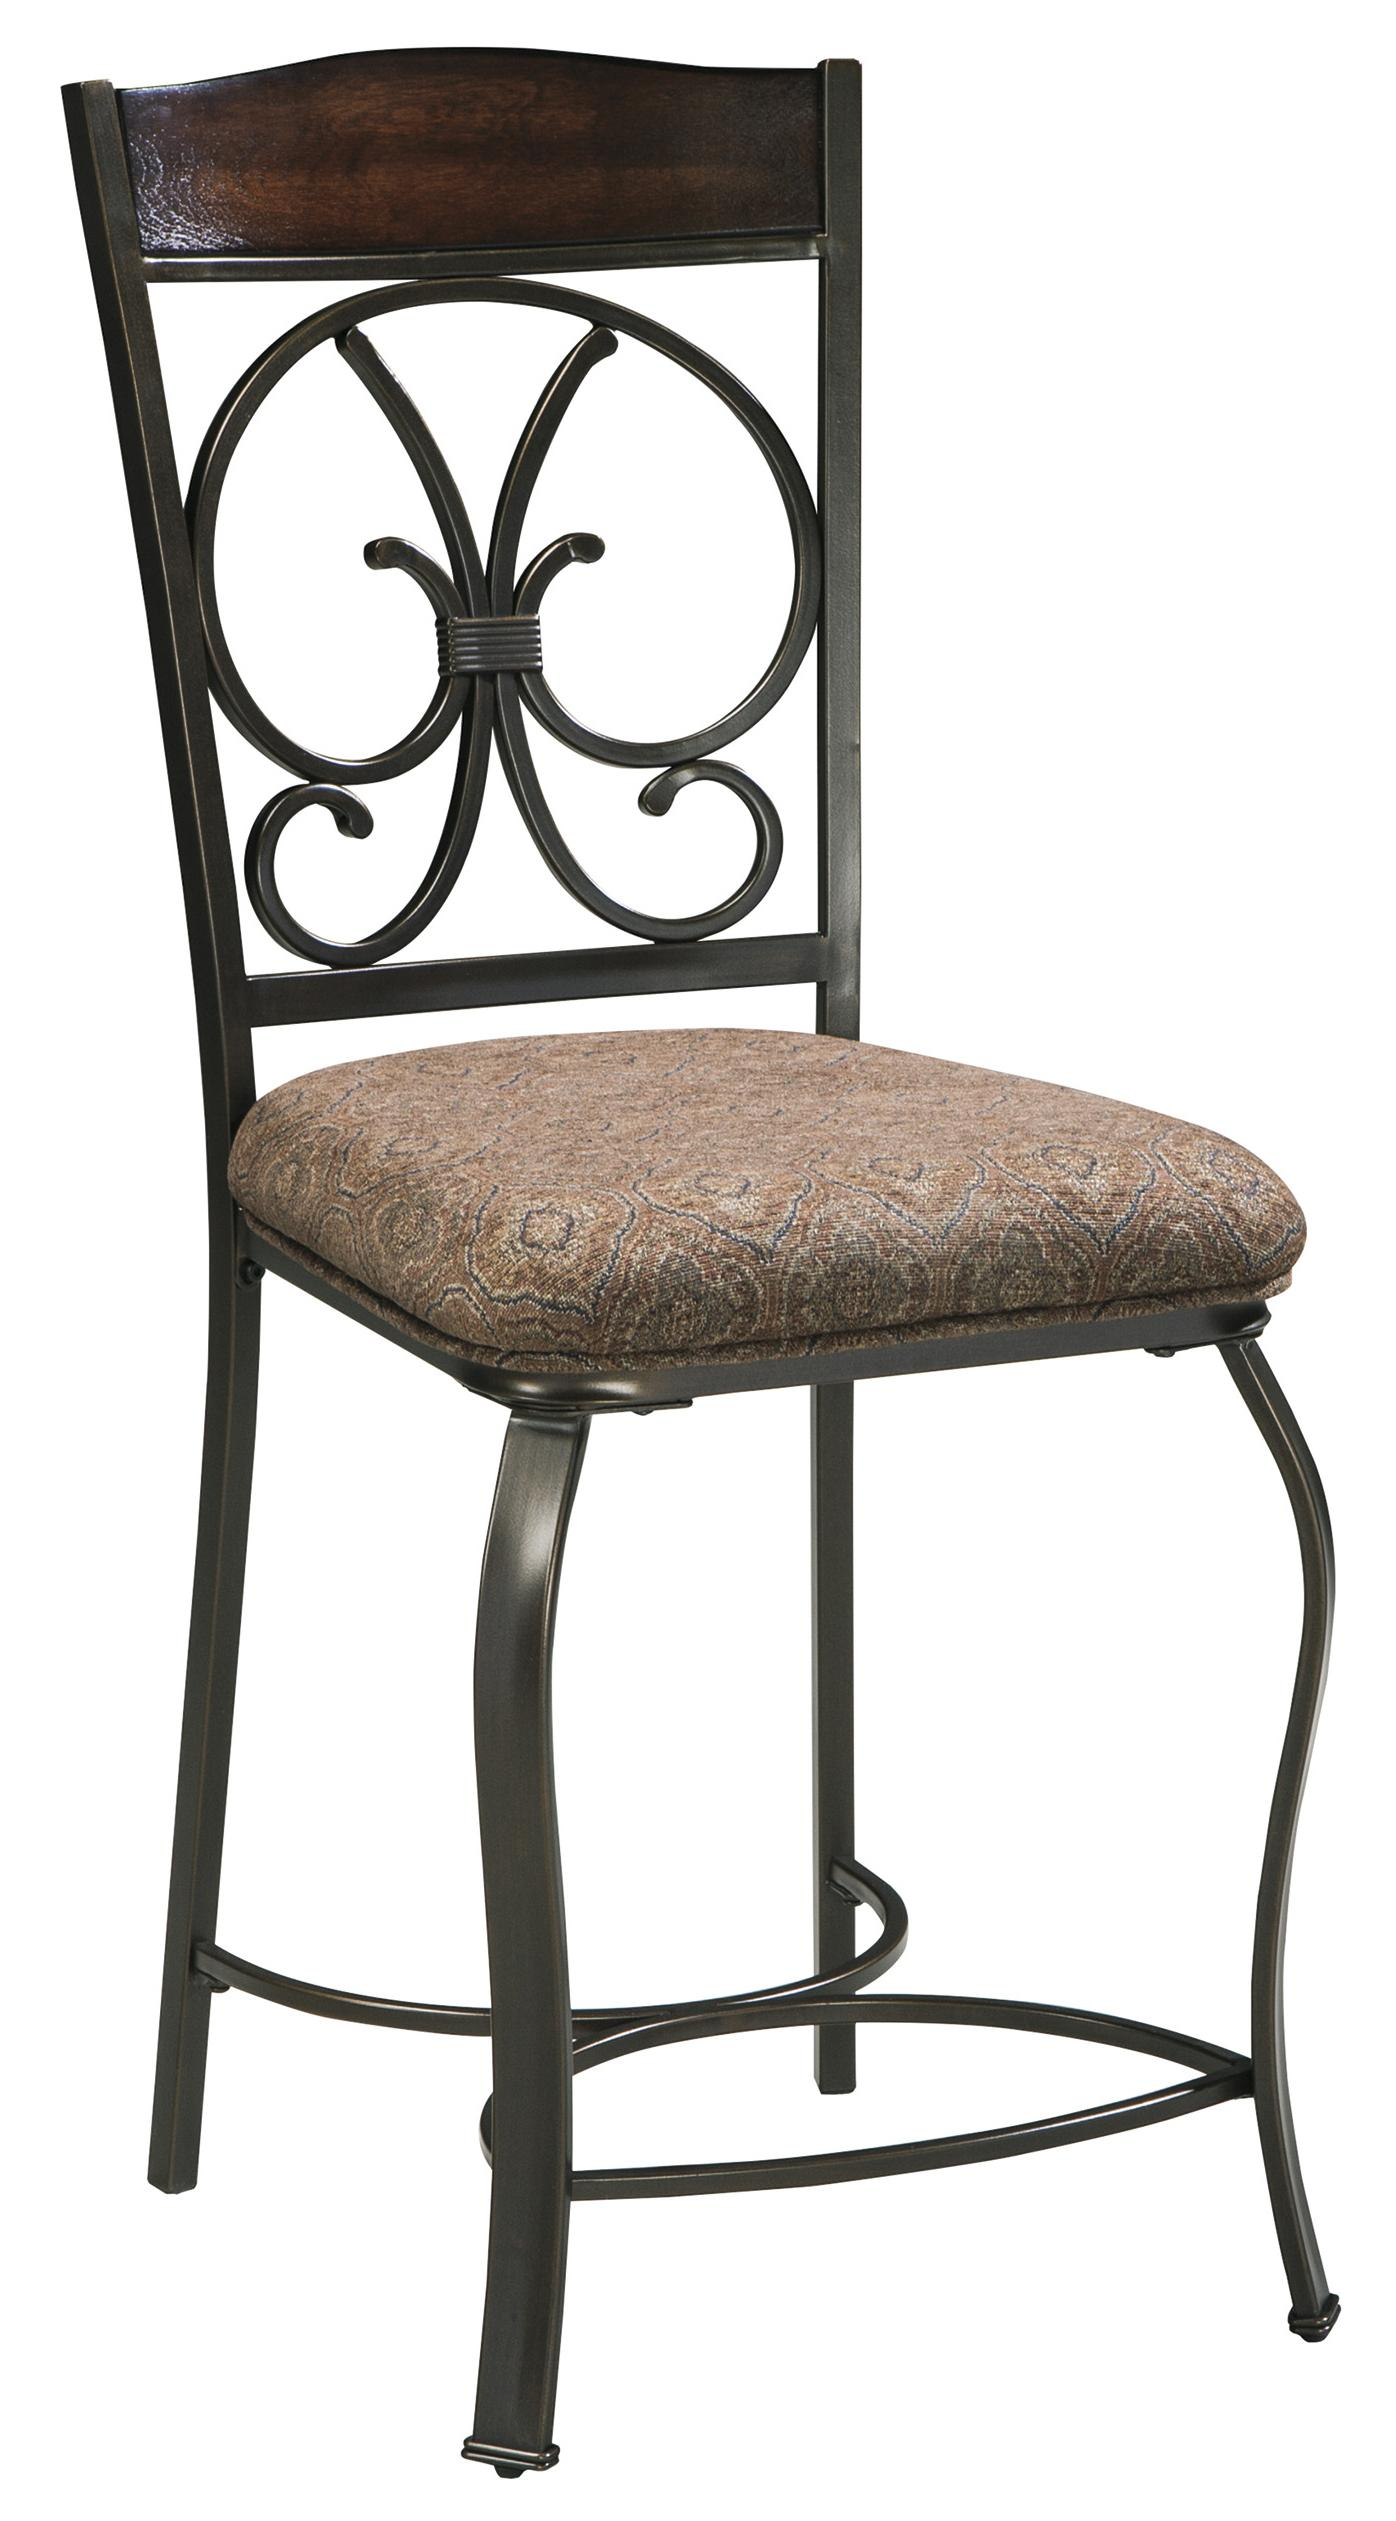 Signature Design by Ashley Glambrey Upholstered Barstool - Item Number: D329-124